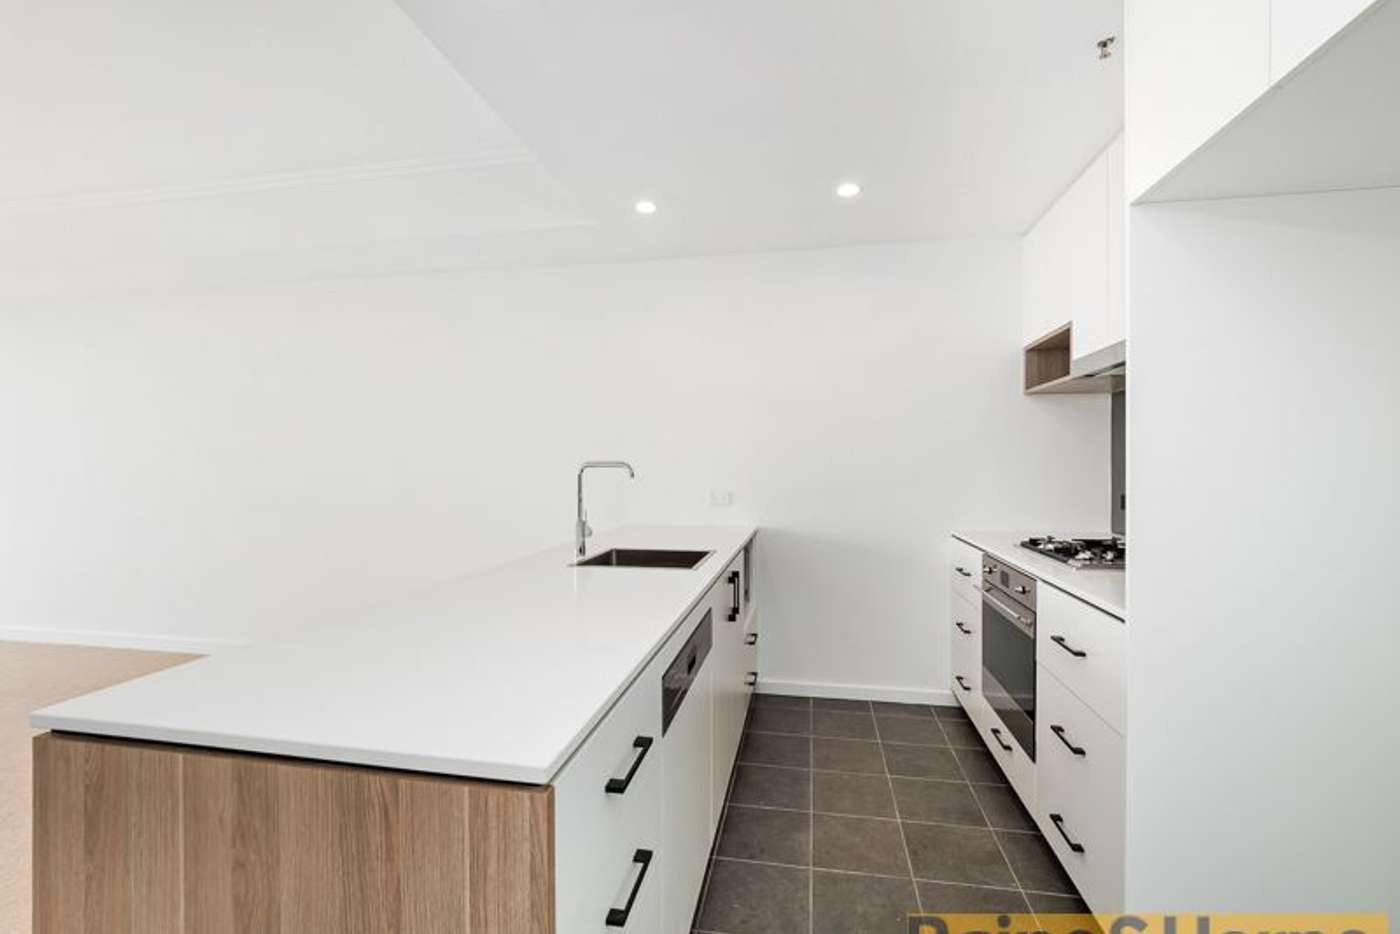 Main view of Homely apartment listing, 415/8 Roland Street, Rouse Hill NSW 2155